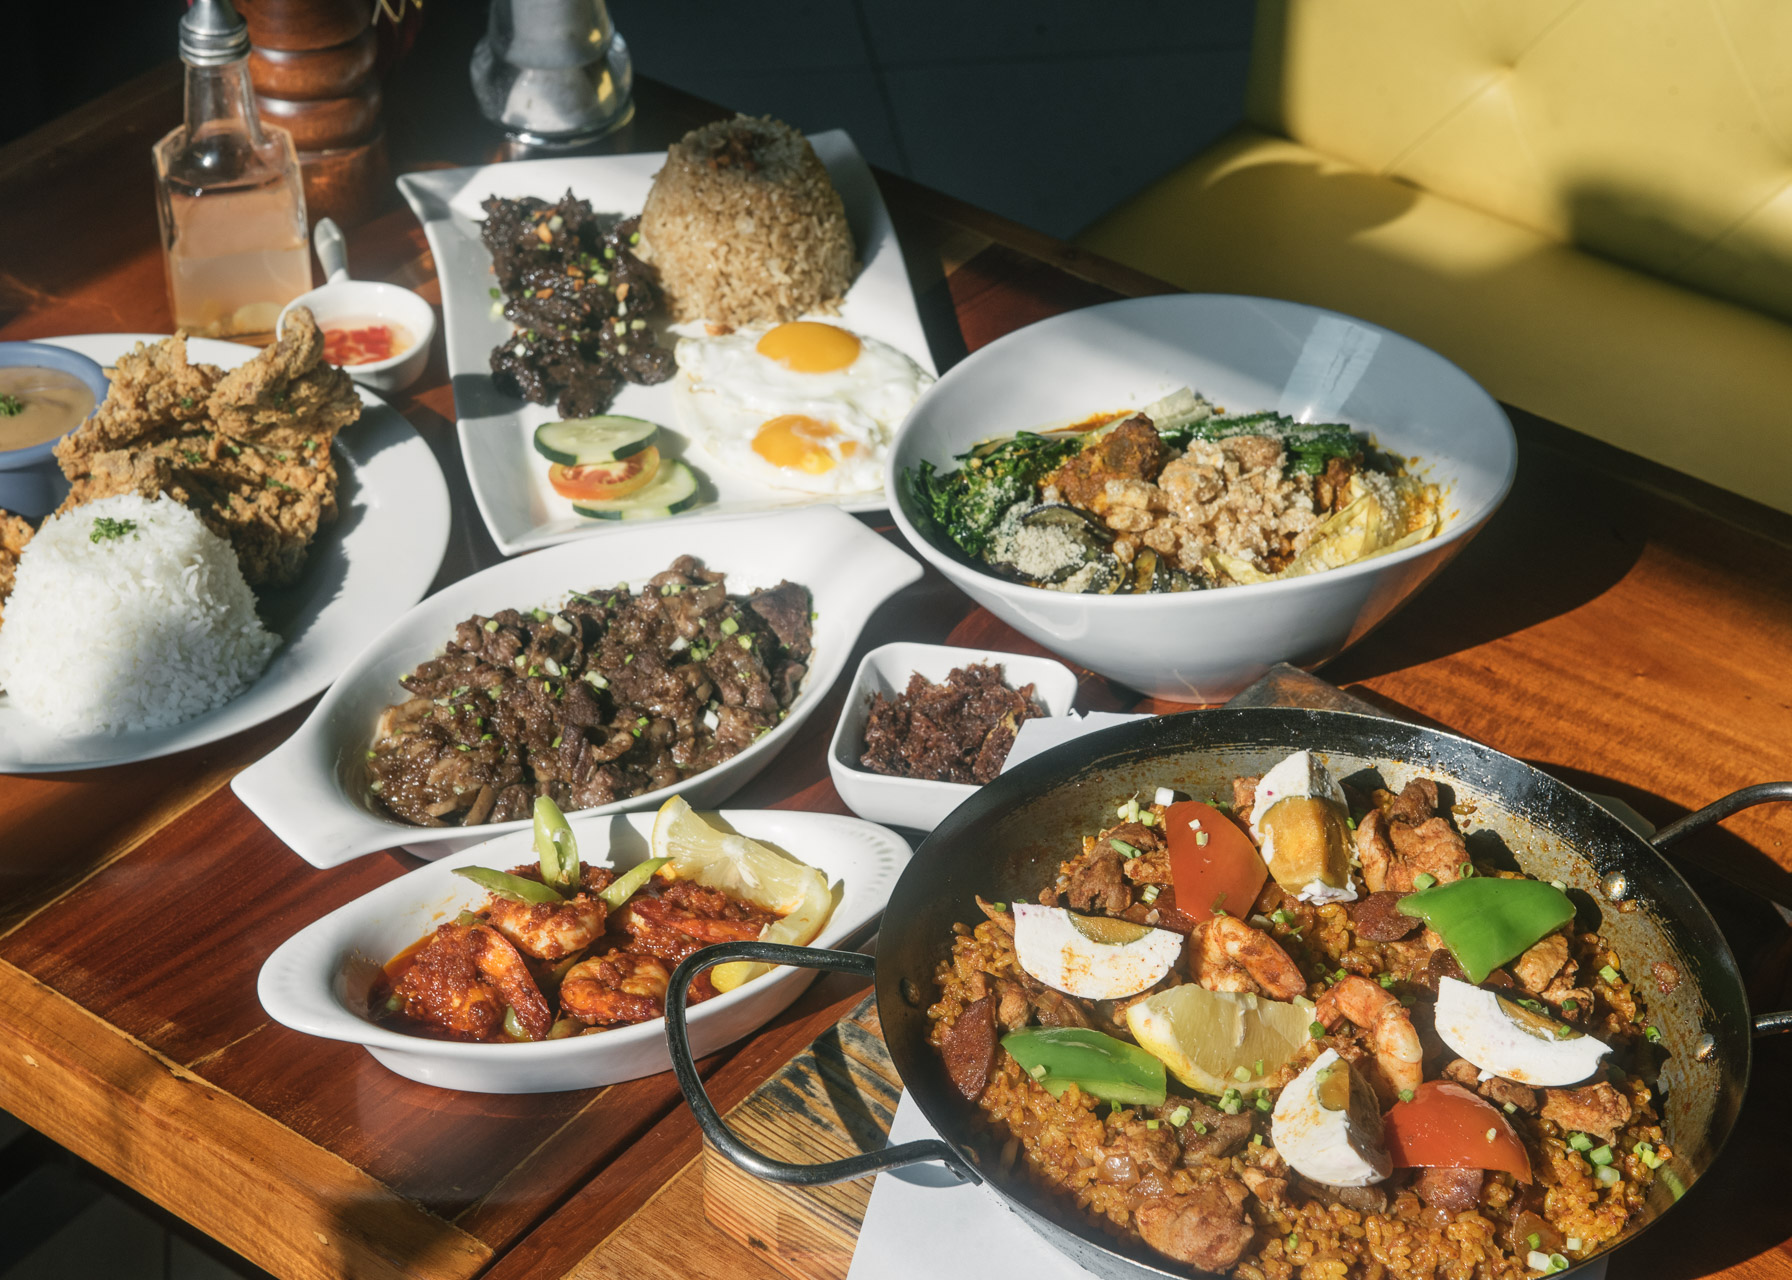 Top 10 Most Loved Restaurants in Antipolo for February 2020